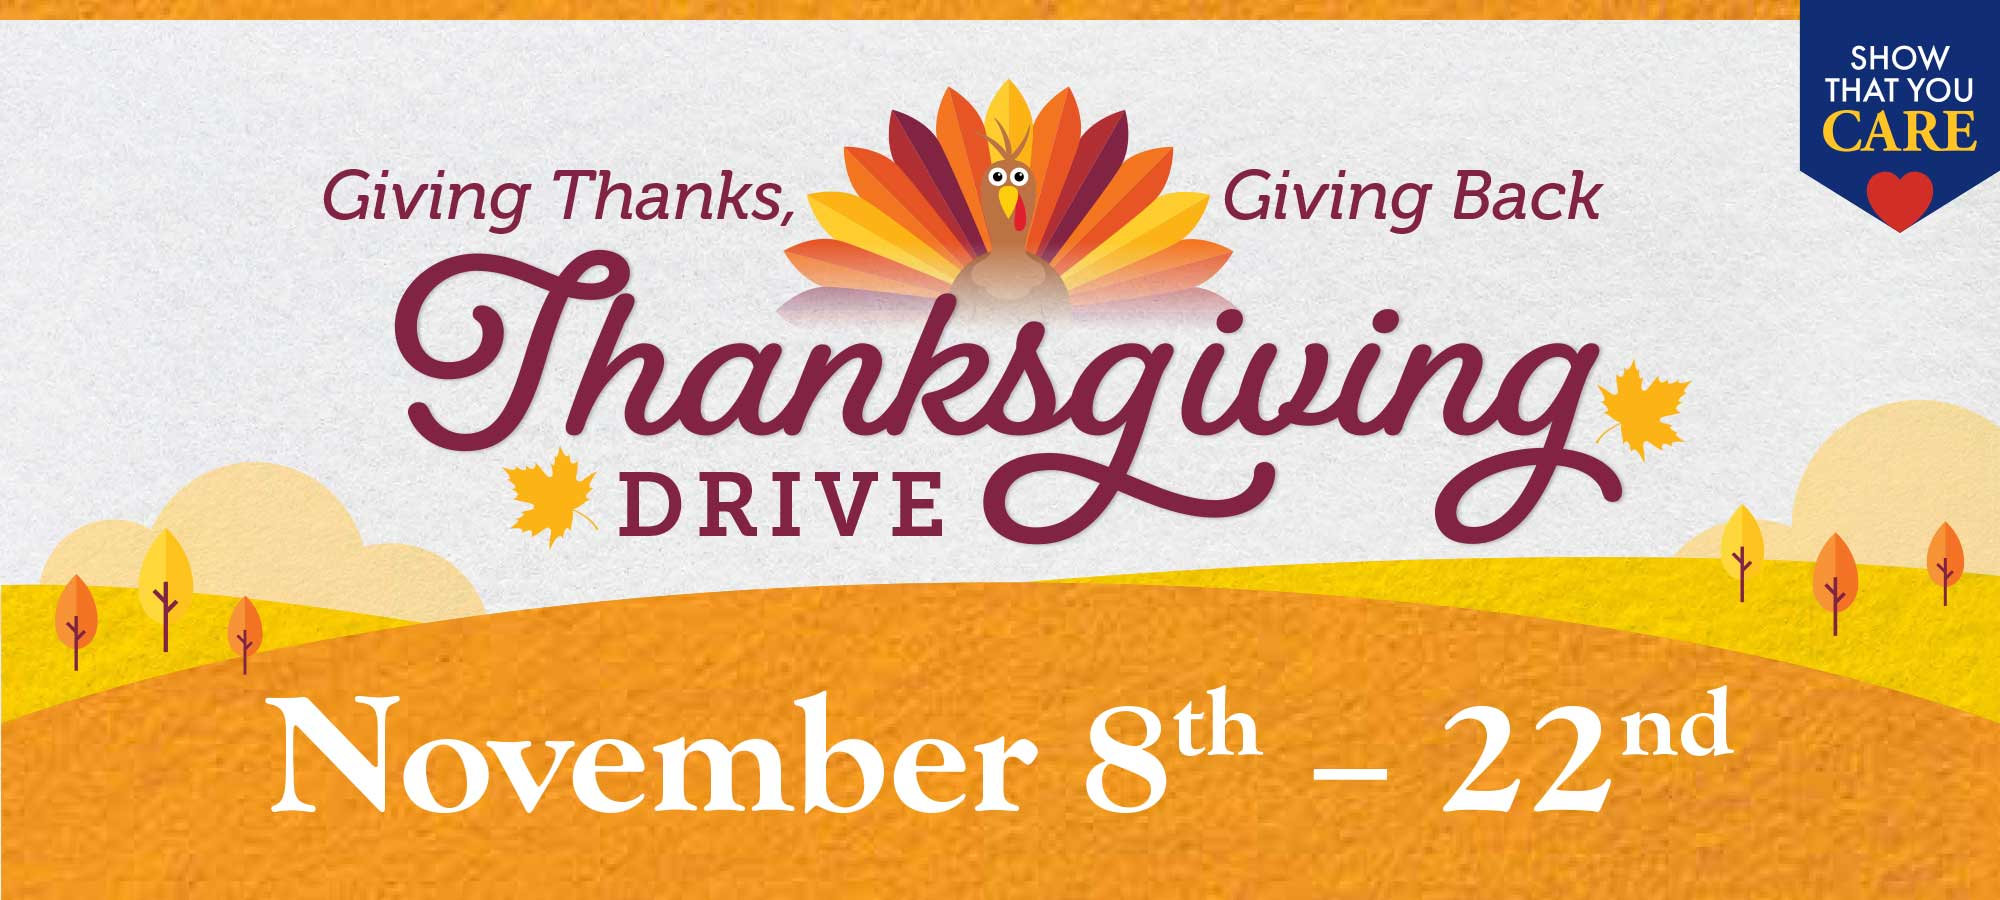 Giving Thanks, Giving Back - Thanksgiving Drive in Houston